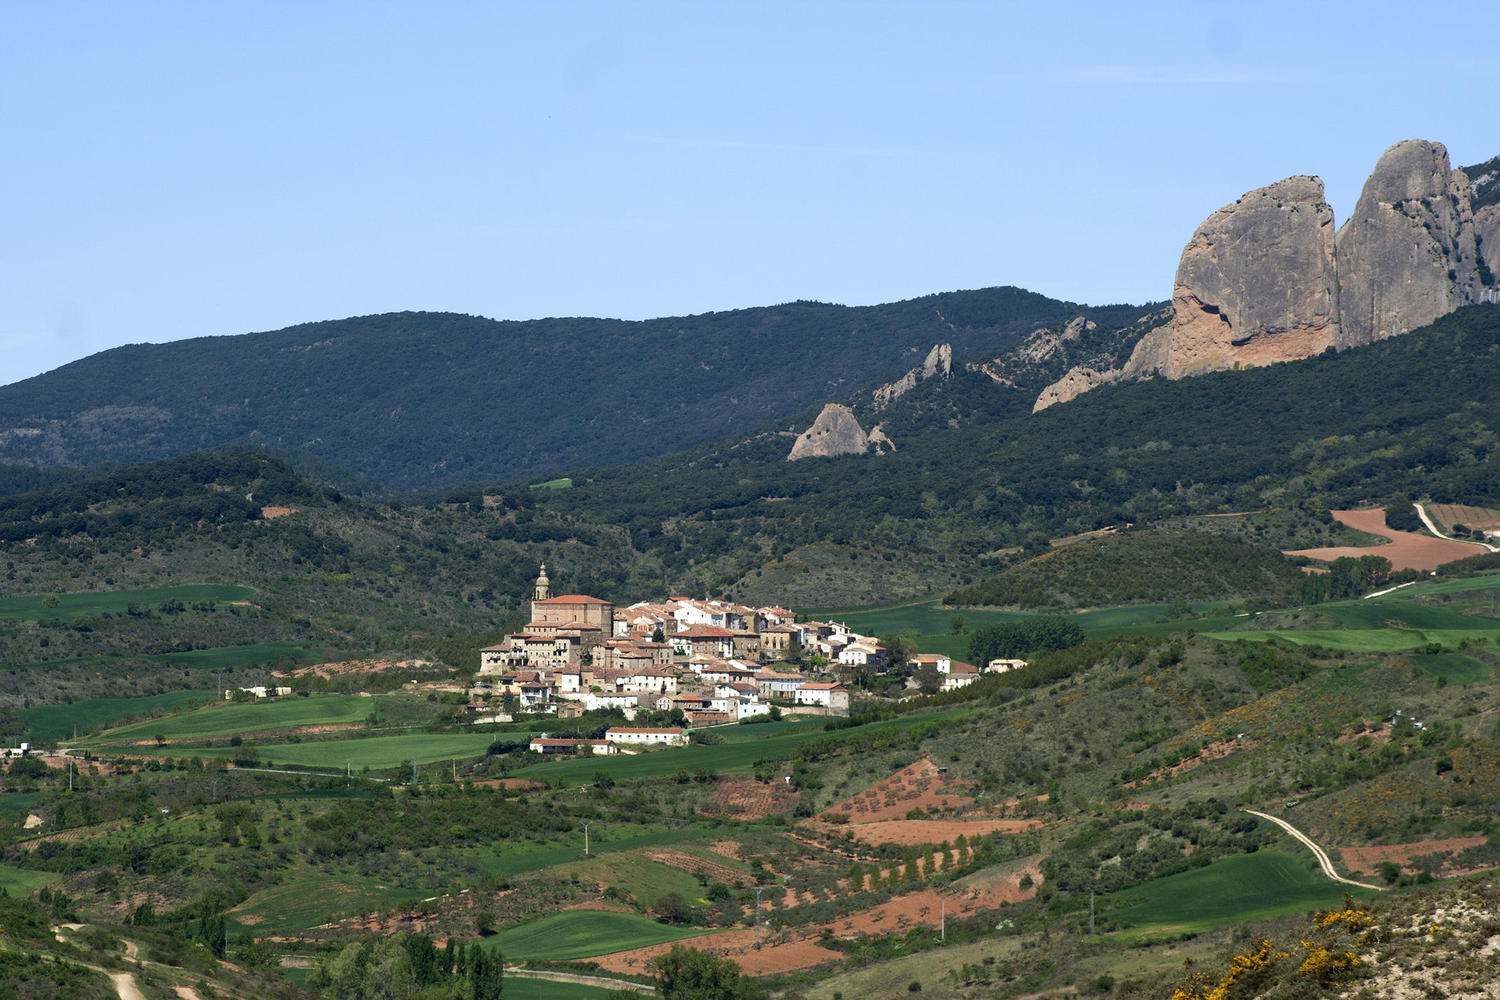 Ahead of us the village of Torralba and the Genevilla pass riight behind it